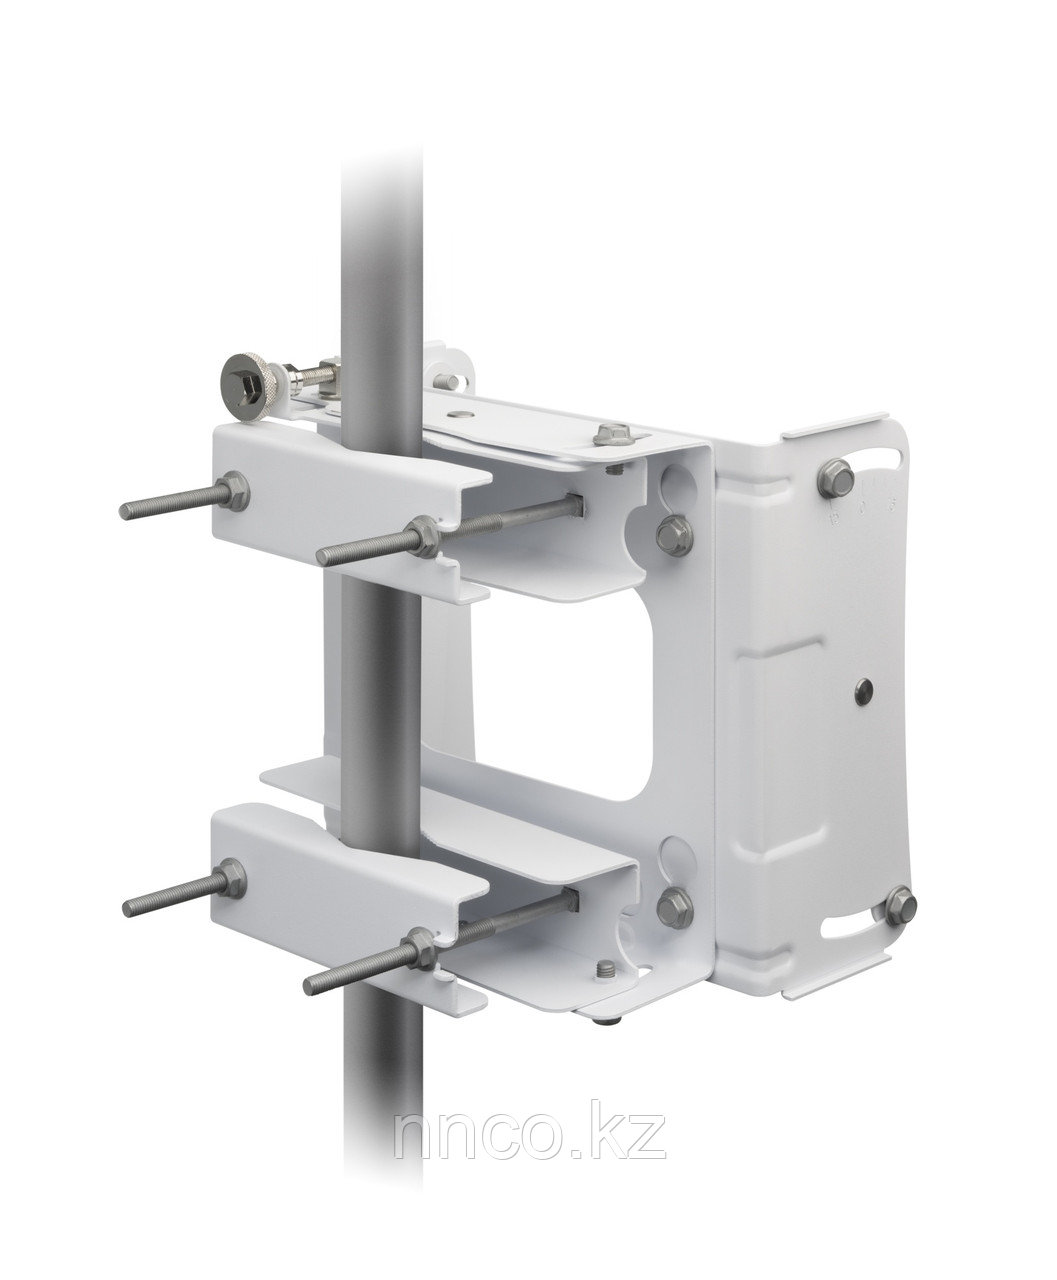 Крепление Ubiquiti Precision Alignment PAK-620